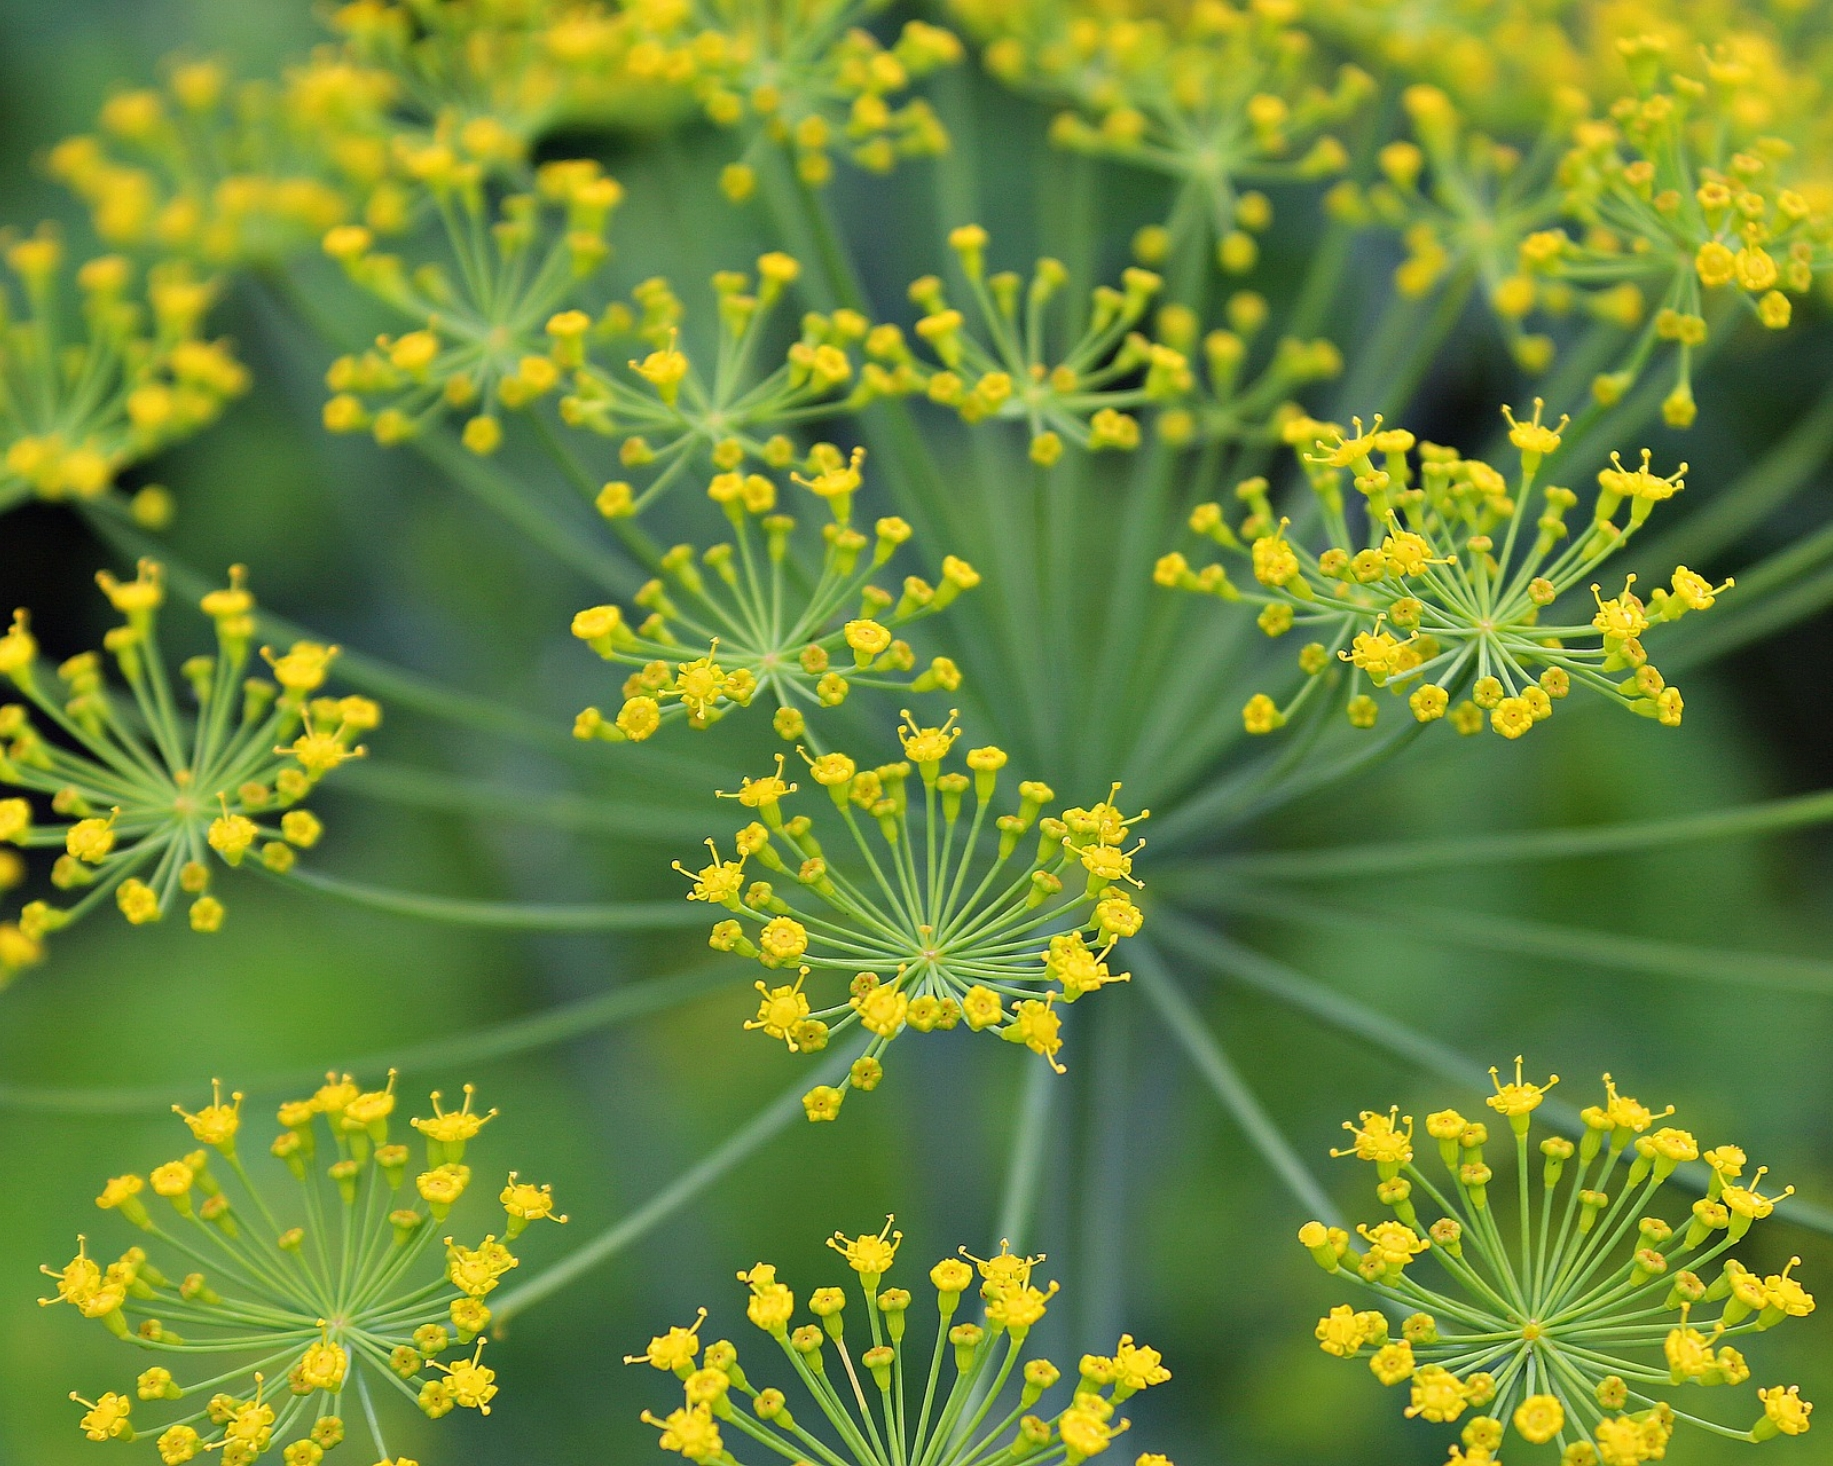 Dill: annual - Pollinators: ButterfilesBeneficials: Hoverfiles,predatory wasps, ladybugsCompanion plant for: BrassicasEdible parts: Foilage and seedBlooms: August-SeptemberSeed or transplant: SeedAdditional info: A million heath benefits, including preventing insomnia.